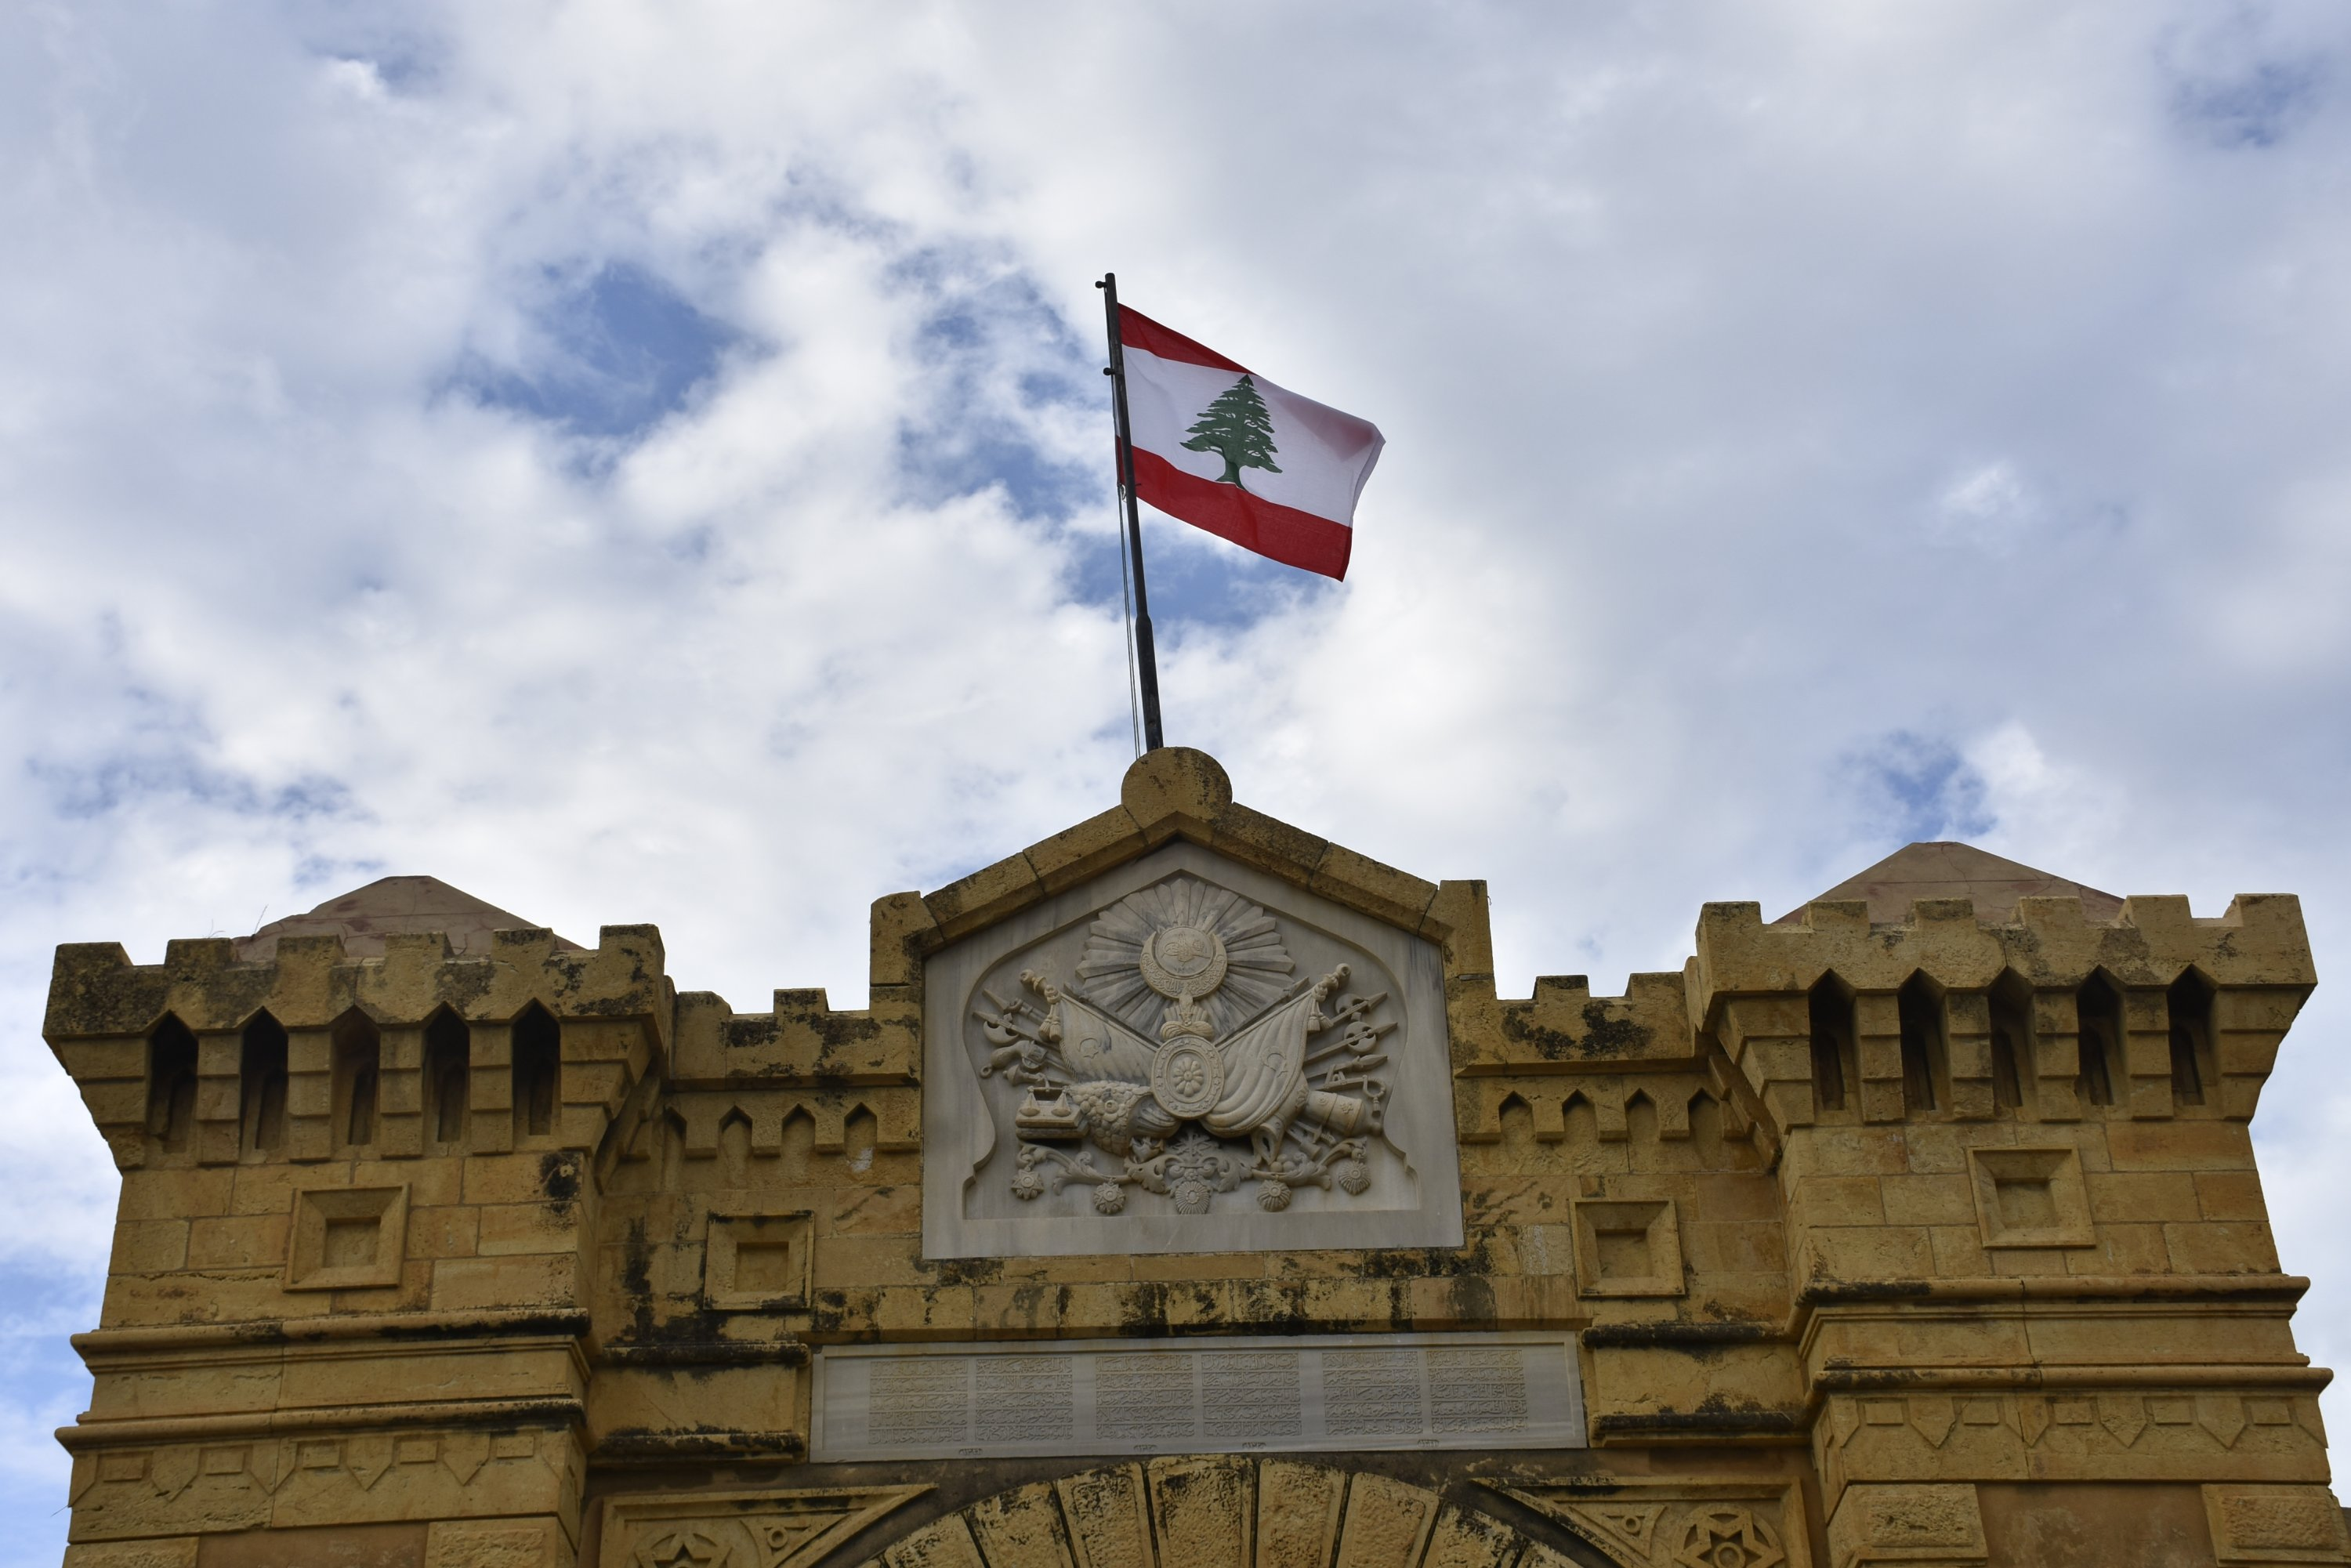 A close-up of the coat of arms of the Ottoman Empire on the gate of Baabda Mansion, Lebanon, Sept. 27, 2021. (AA Photo)